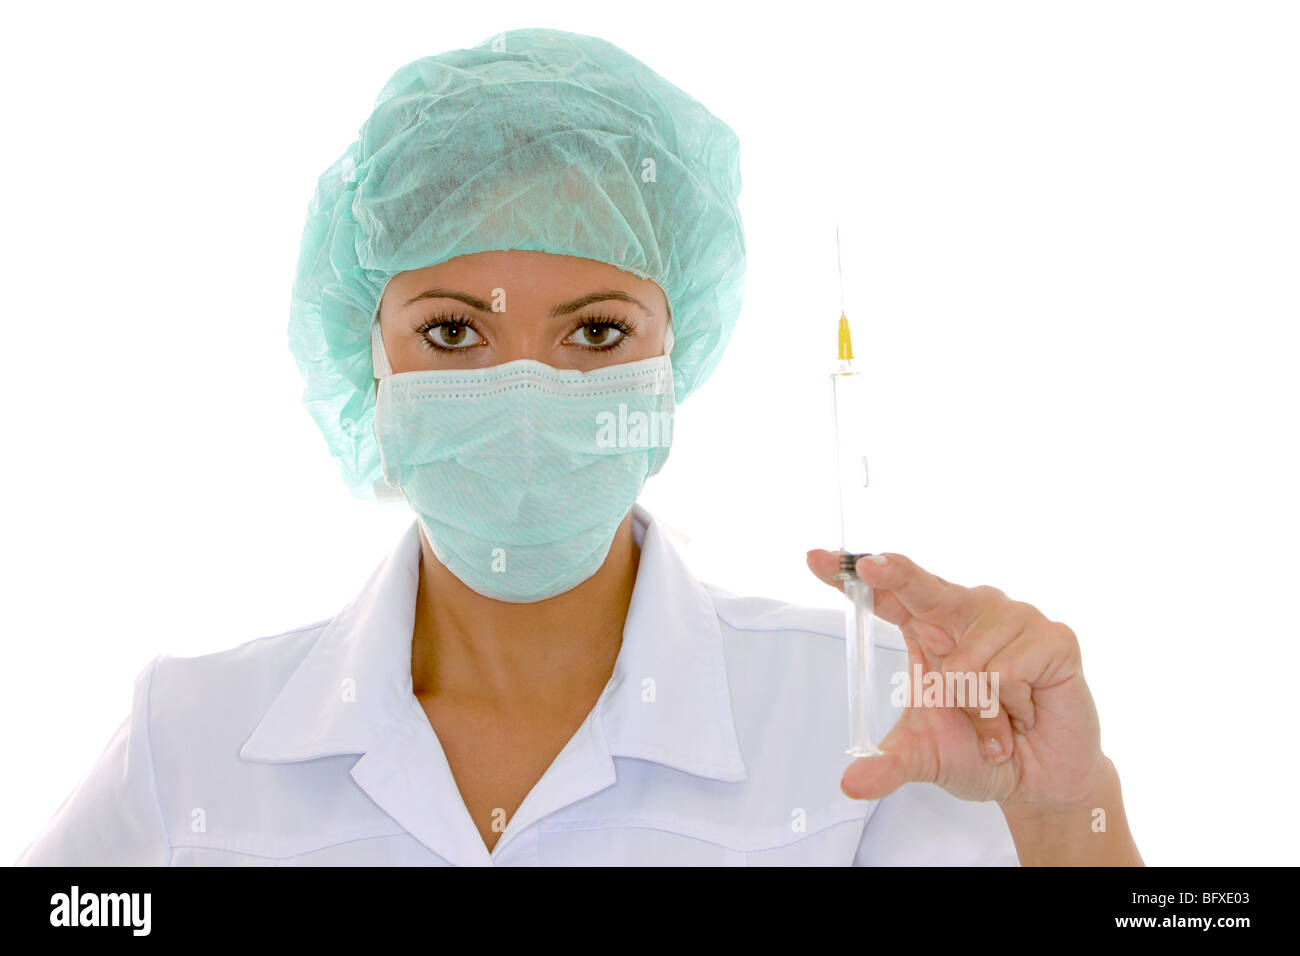 Aerztin mit Mundschutz und Spritze, female doctor with surgical mask and injection Stock Photo